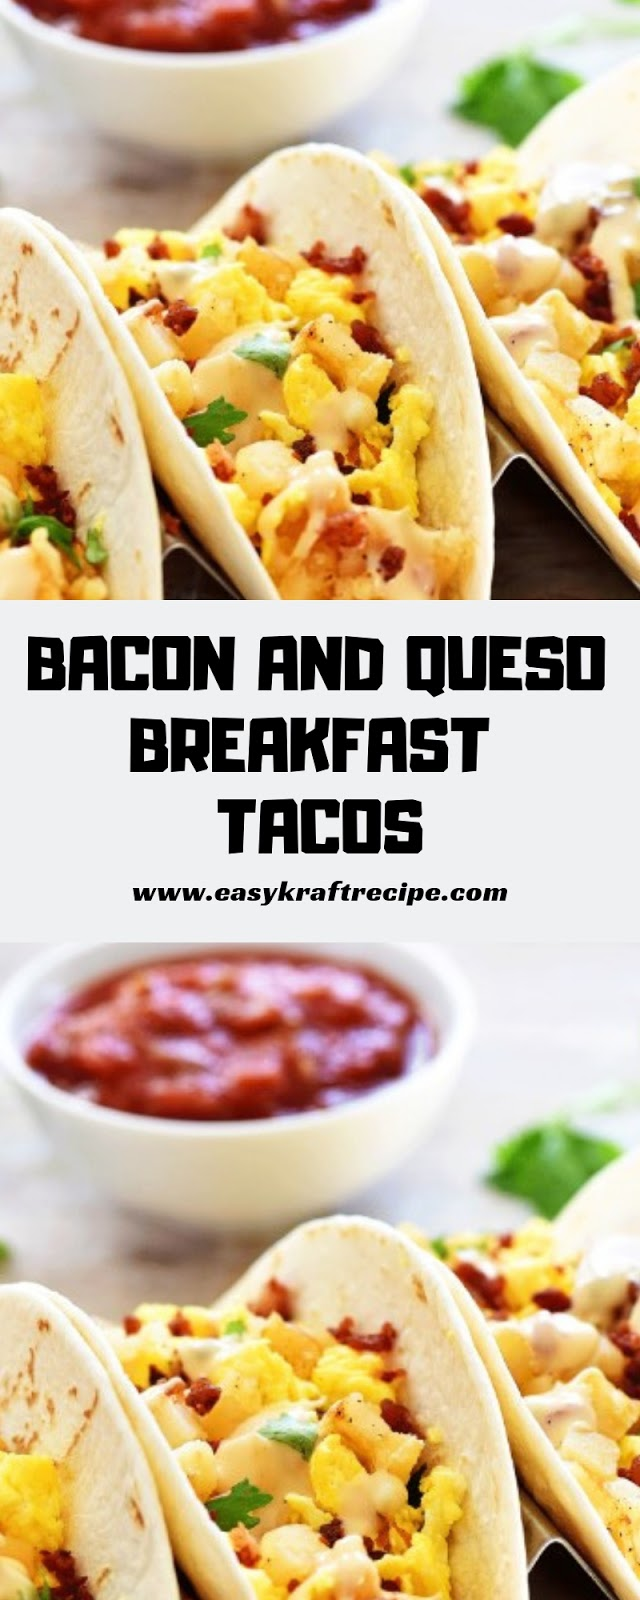 BACON AND QUESO BREAKFAST TACOS